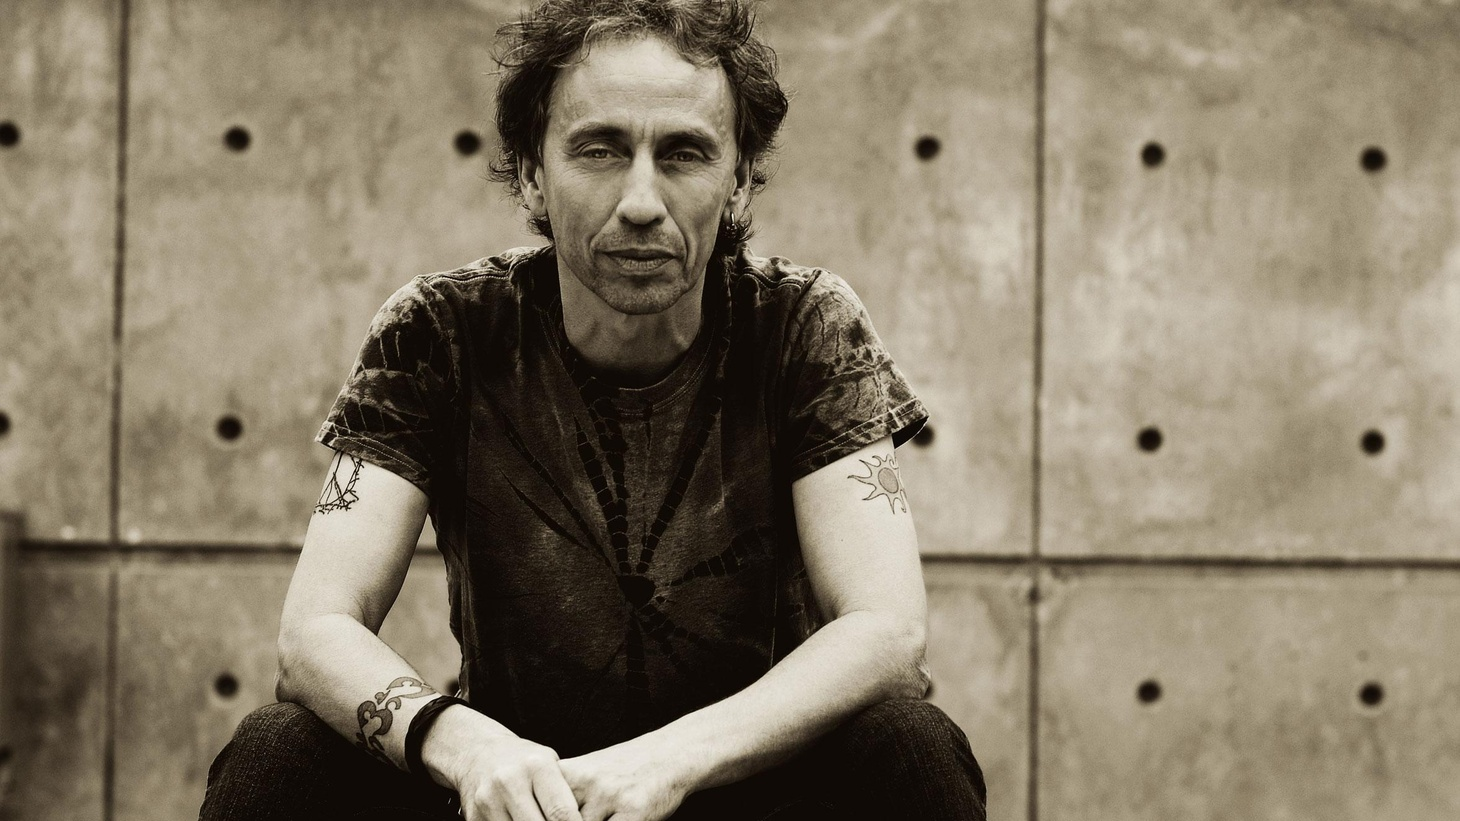 On this of Sounds Eclectic, host Nic Harcourt plays new, upcoming and recent releases from Martha Wainwright, Sierra Swan, and the latest from Spoon. Plus a live in-studio performance from Jem, all this and much more on Sounds Eclectic.